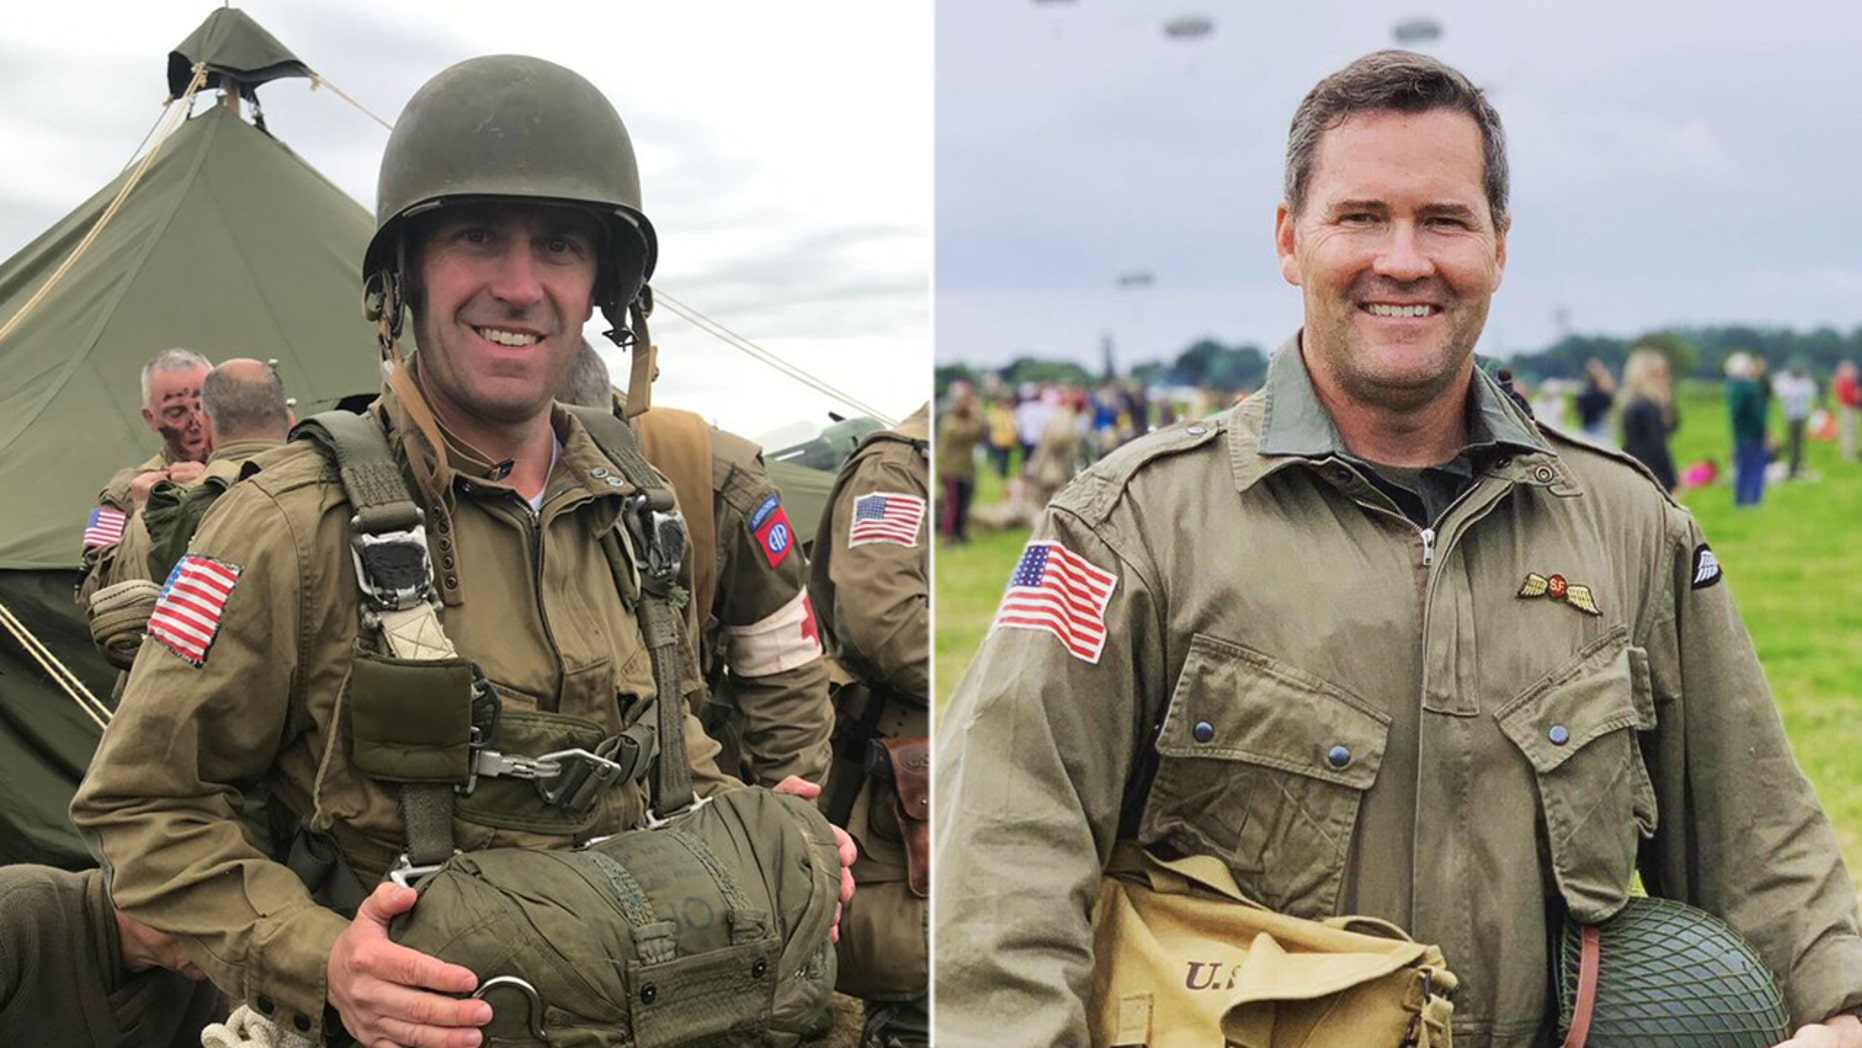 Colorado Democratic Rep. Jason Crow andFlorida Republican Rep. Michael Waltzjoined together for a bipartisan parachute jump in Normandy on Sunday to commemorate the 75th anniversary of D-Day. (Twitter).